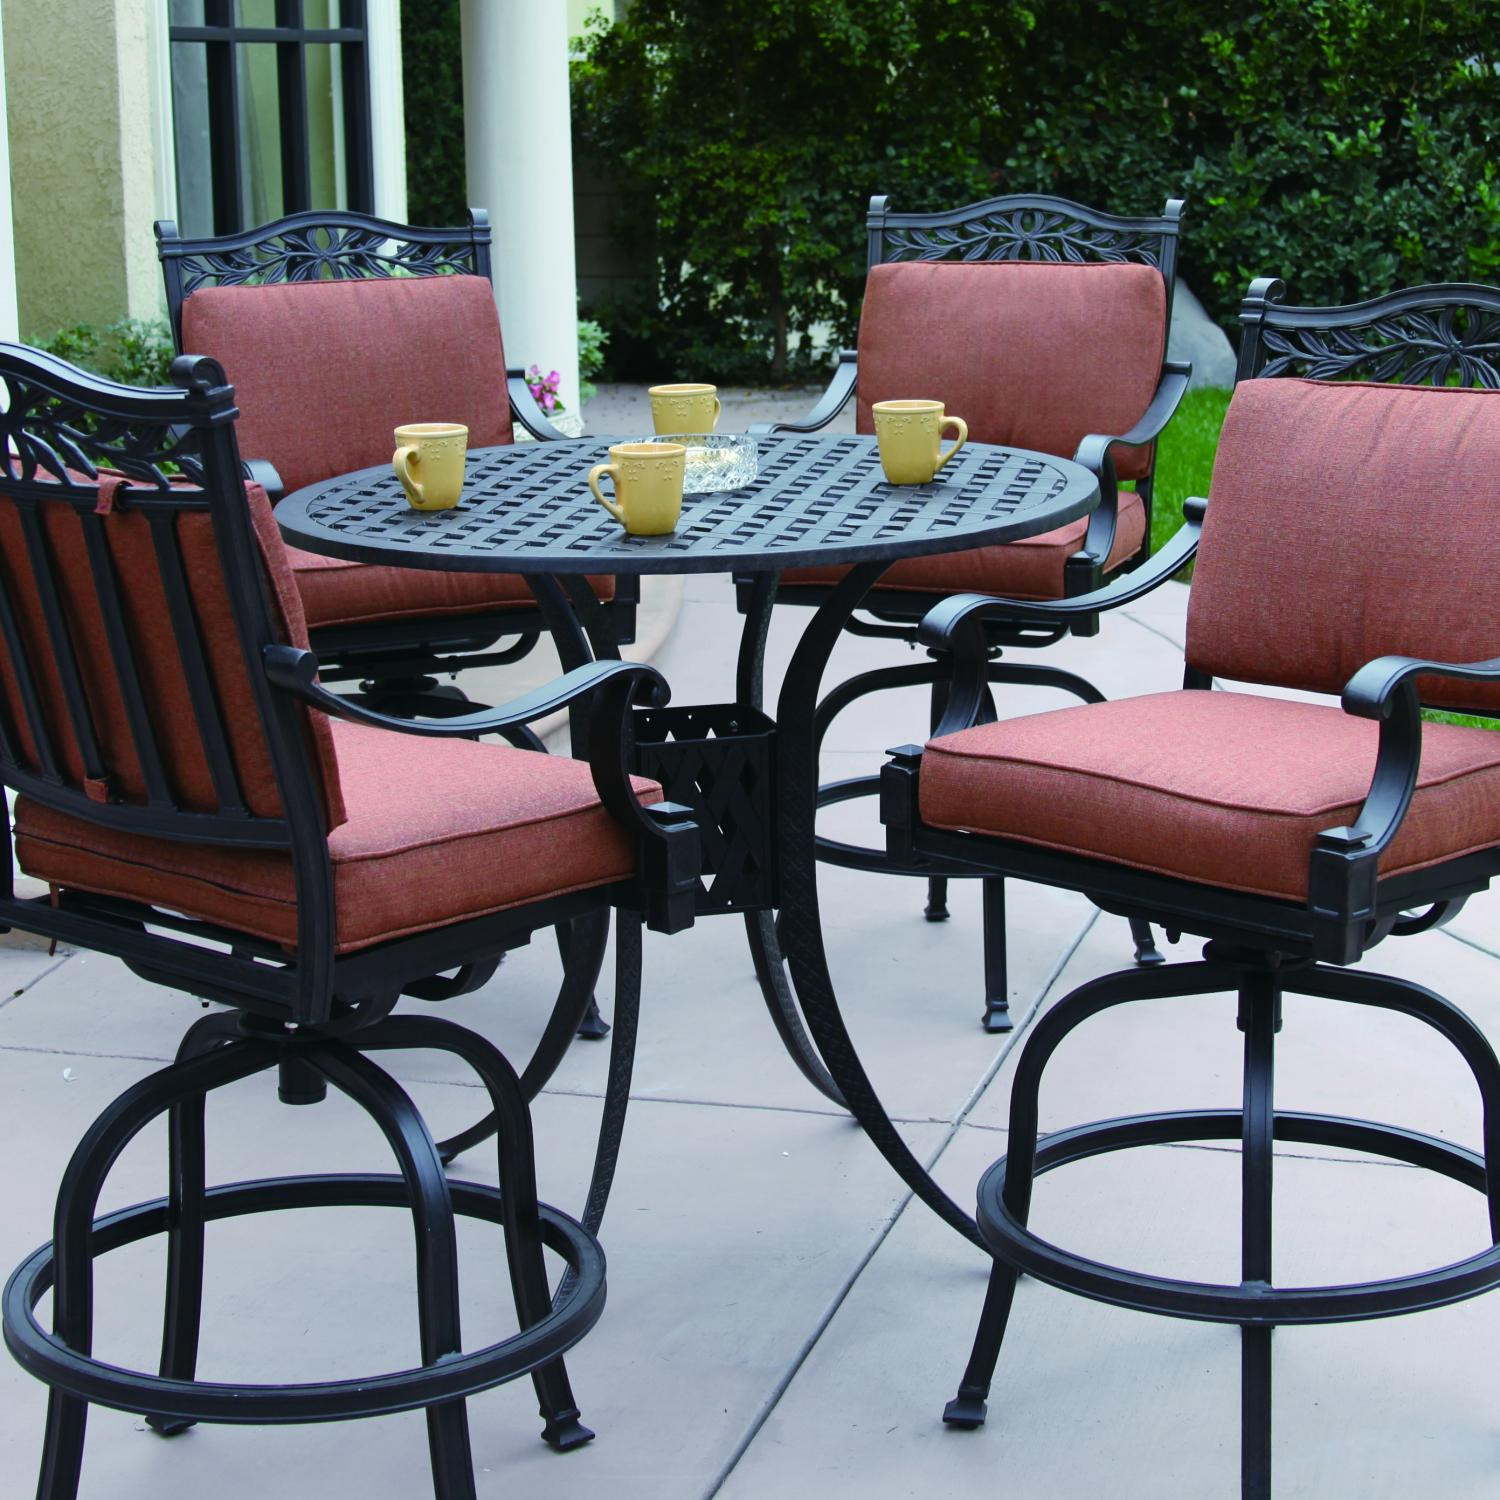 Pleasing Buy Darlee Charleston 4 Person Cast Aluminum Patio Bar Set Interior Design Ideas Inesswwsoteloinfo